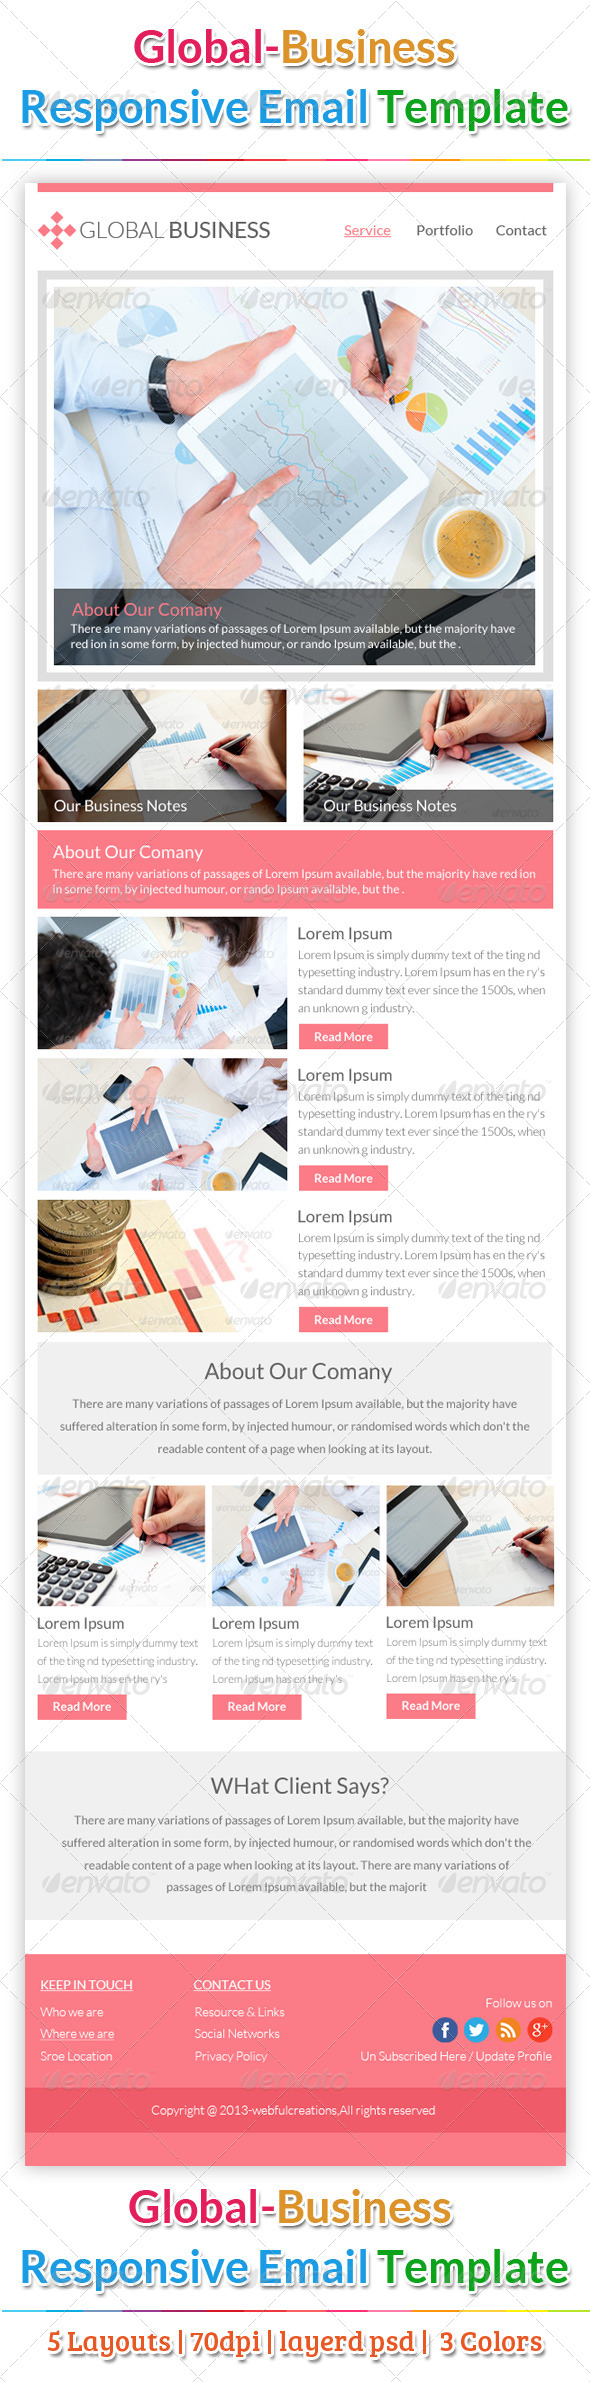 GraphicRiver Global Business Email Template 6352130